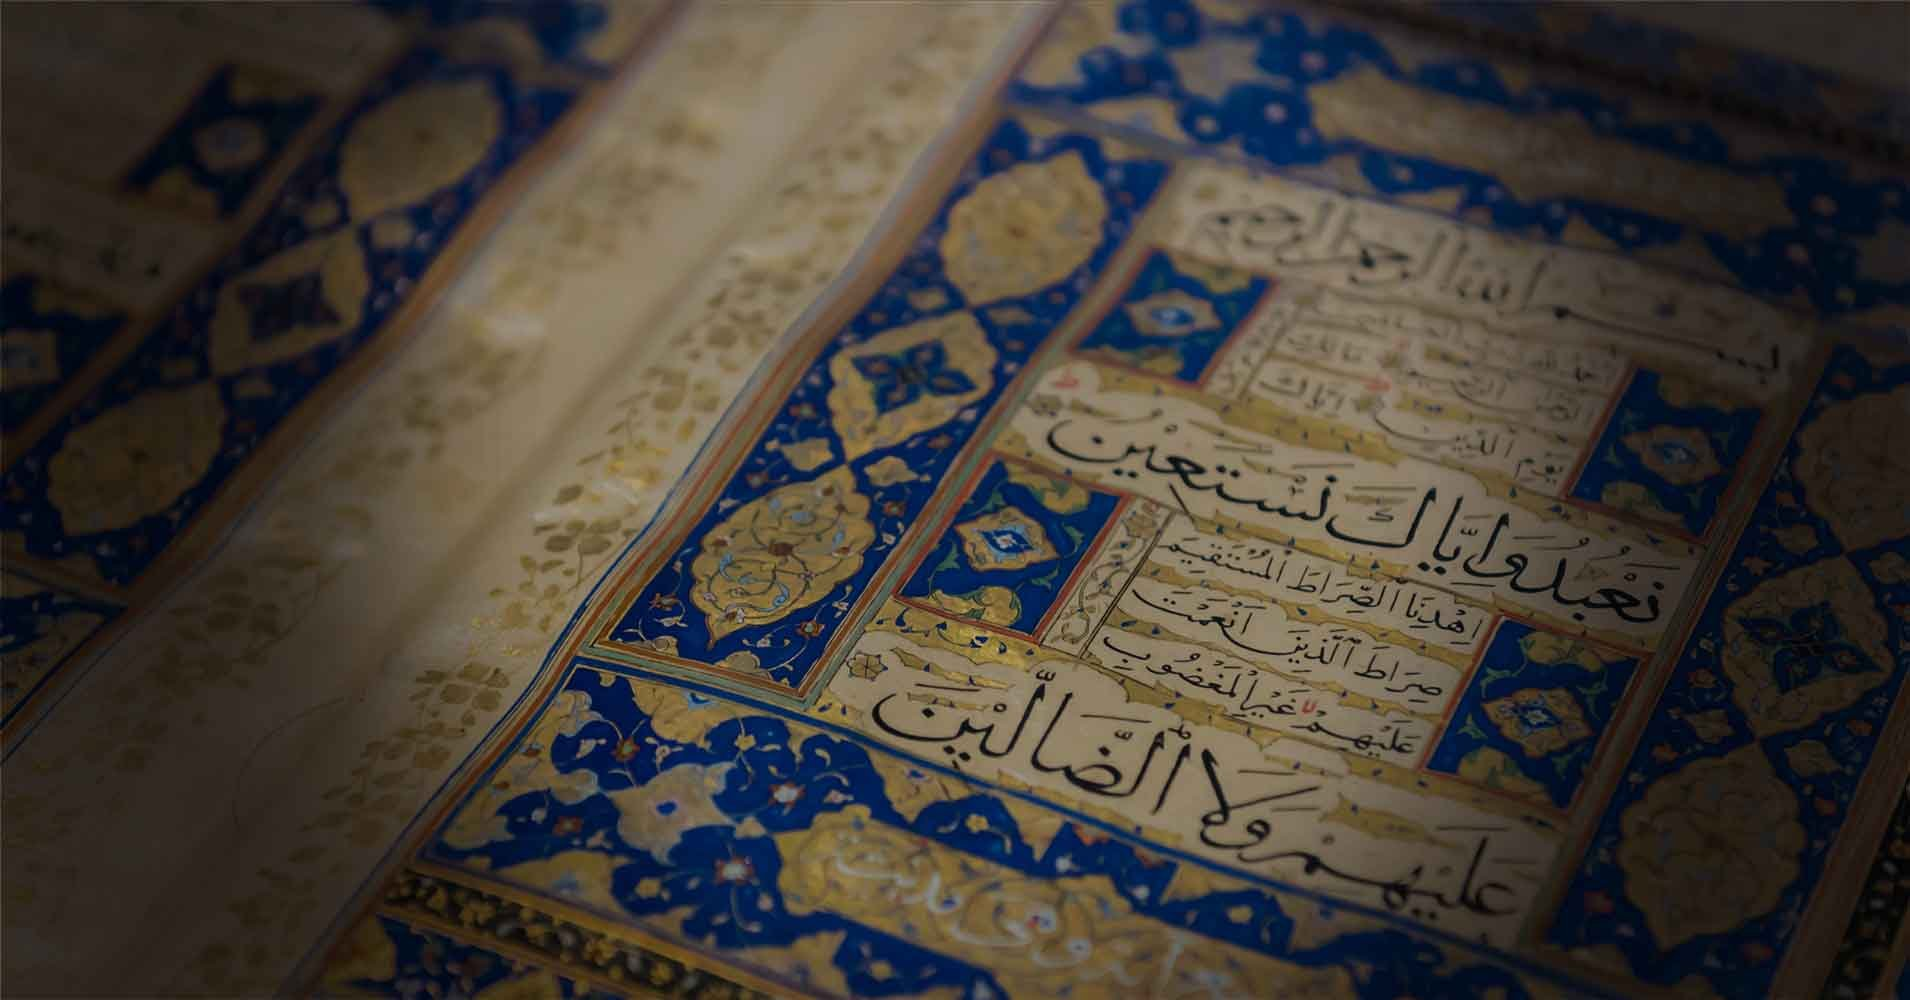 The Ethical Worldview of the Qur'an